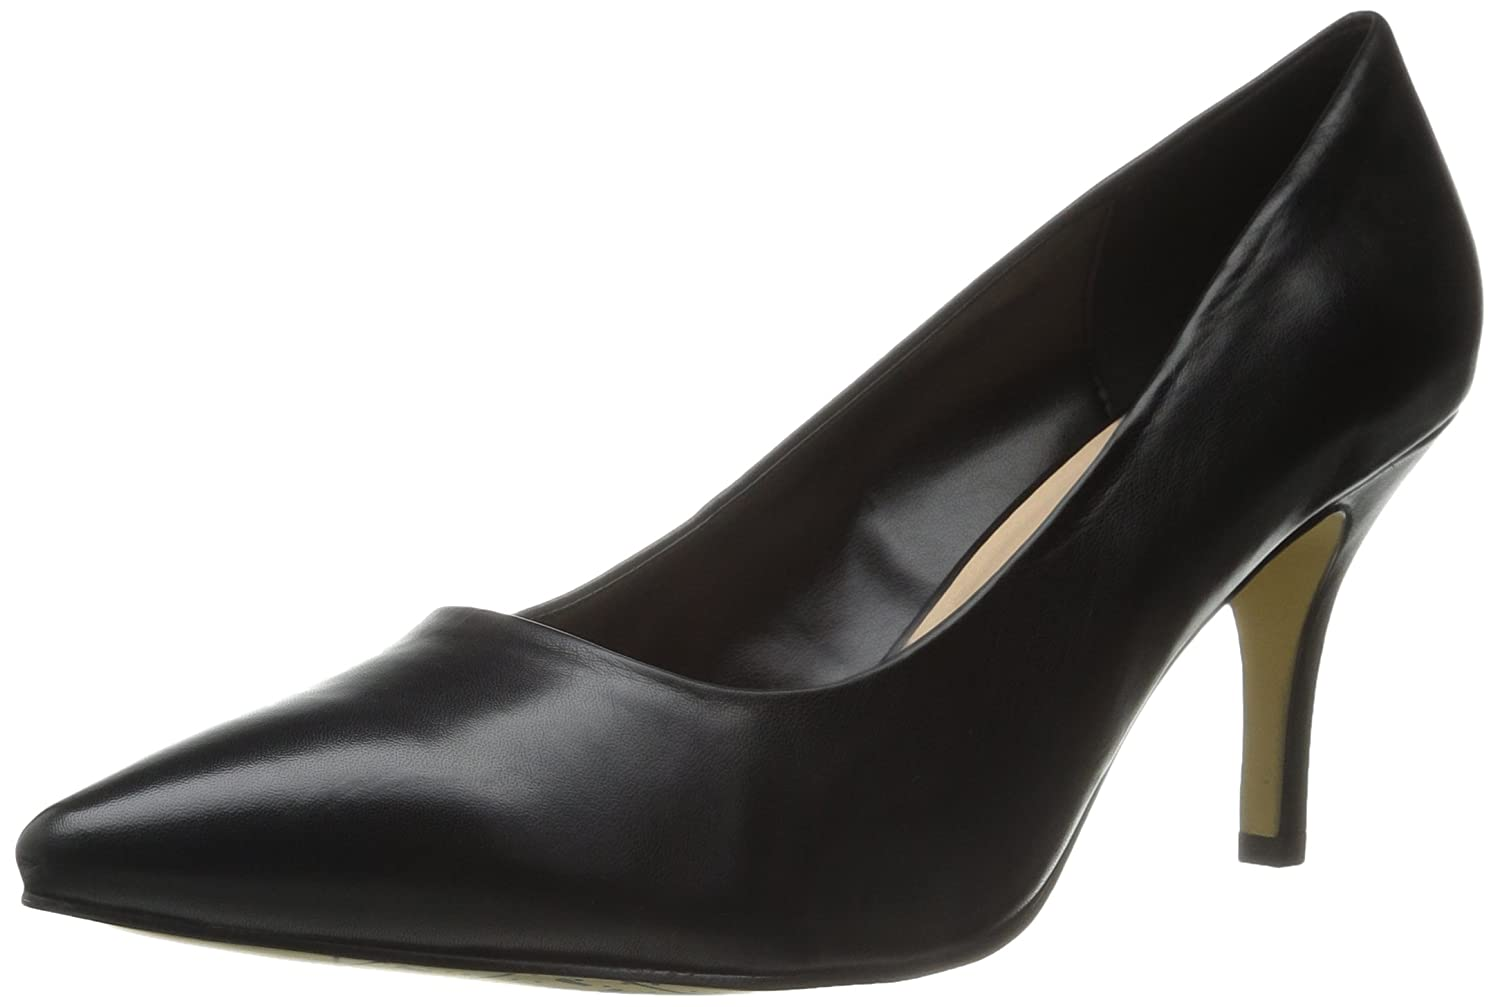 Bella Vita B00ZIC8OJO Women's Define Dress Pump B00ZIC8OJO Vita 6.5 N US|Black Leather 981cc5